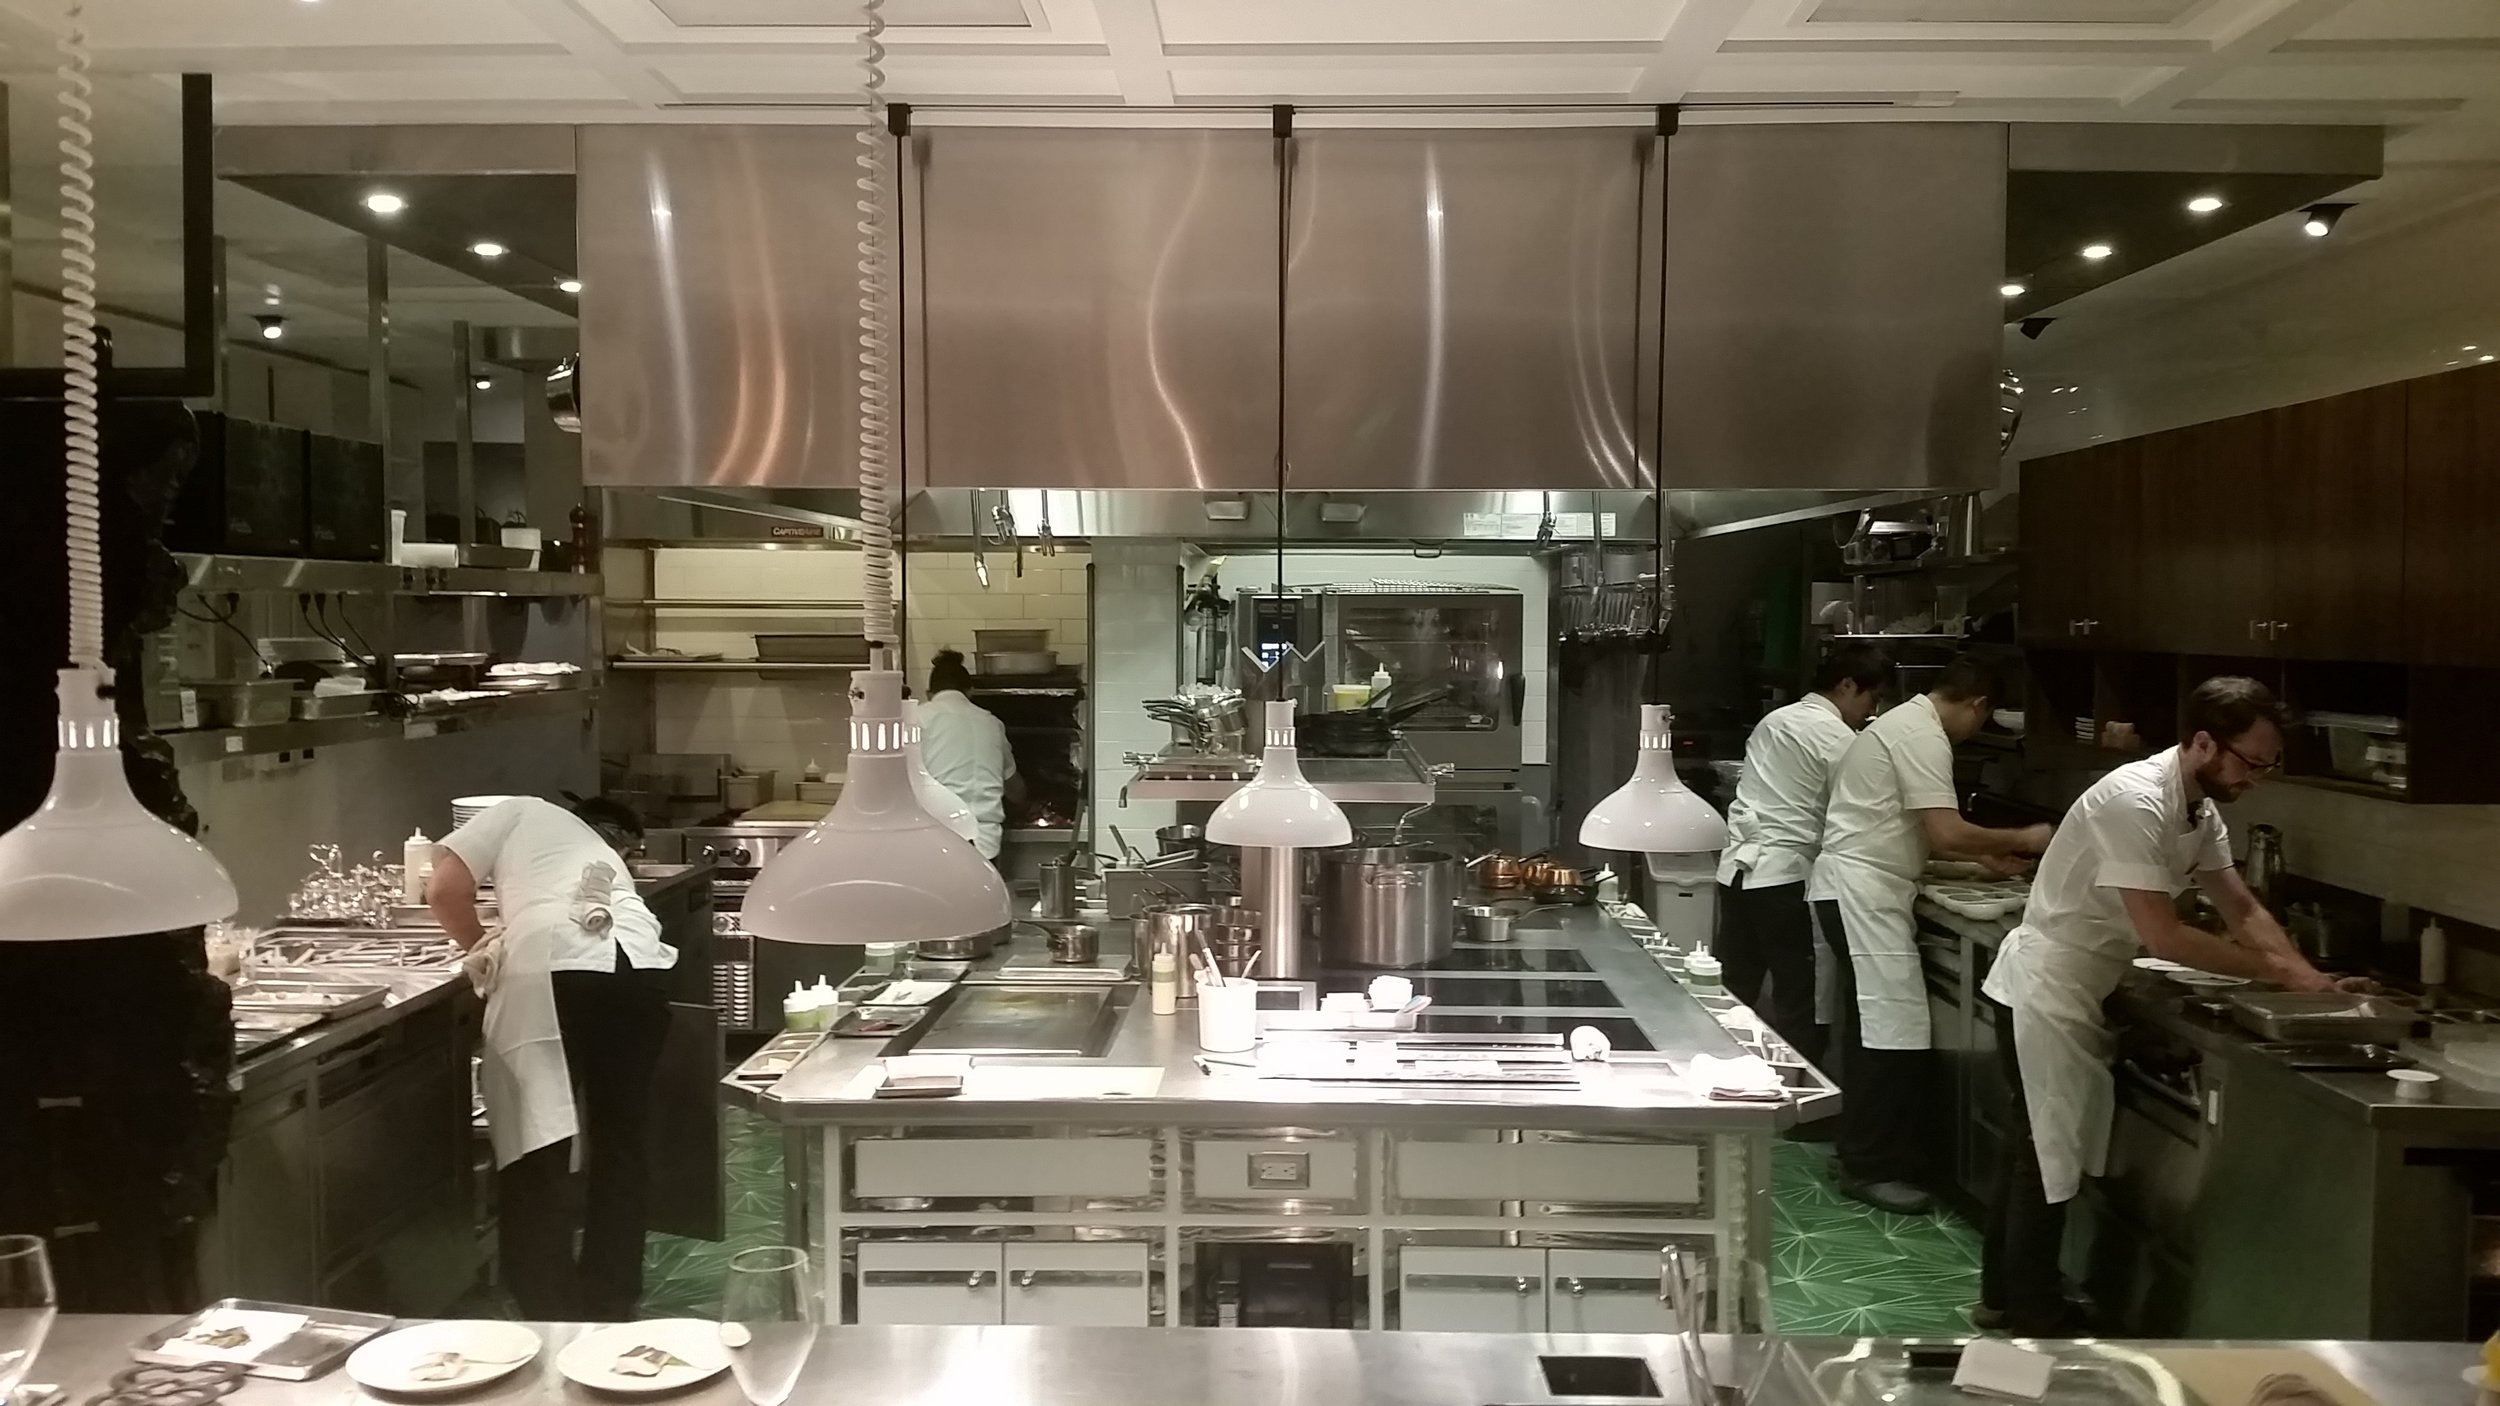 Pineapple and Pearls in Washington, DC for Chef Aaron Silverman